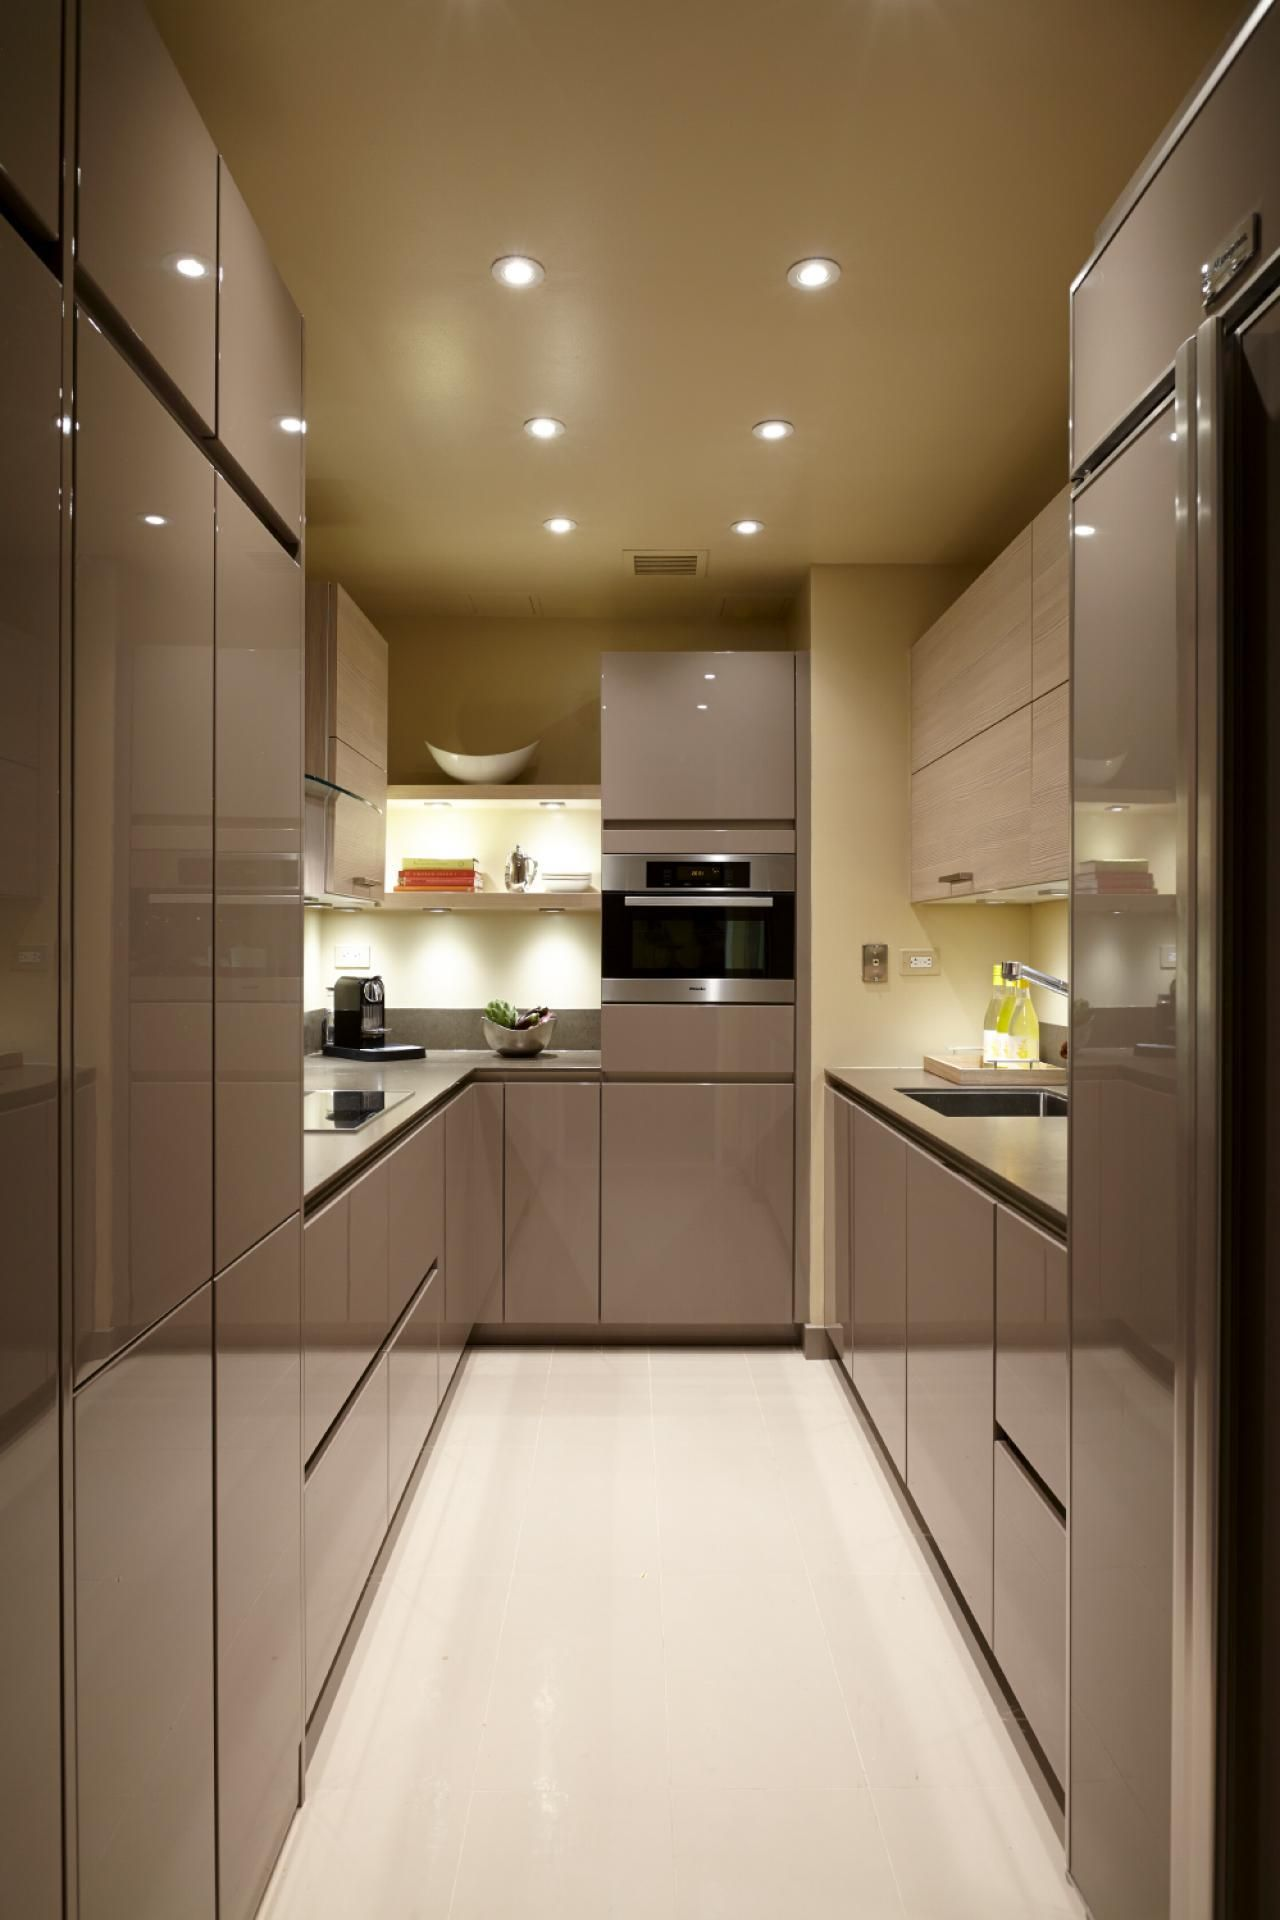 Small Kitchen Remodel Ideas Shining And Maximal Fresh Look In